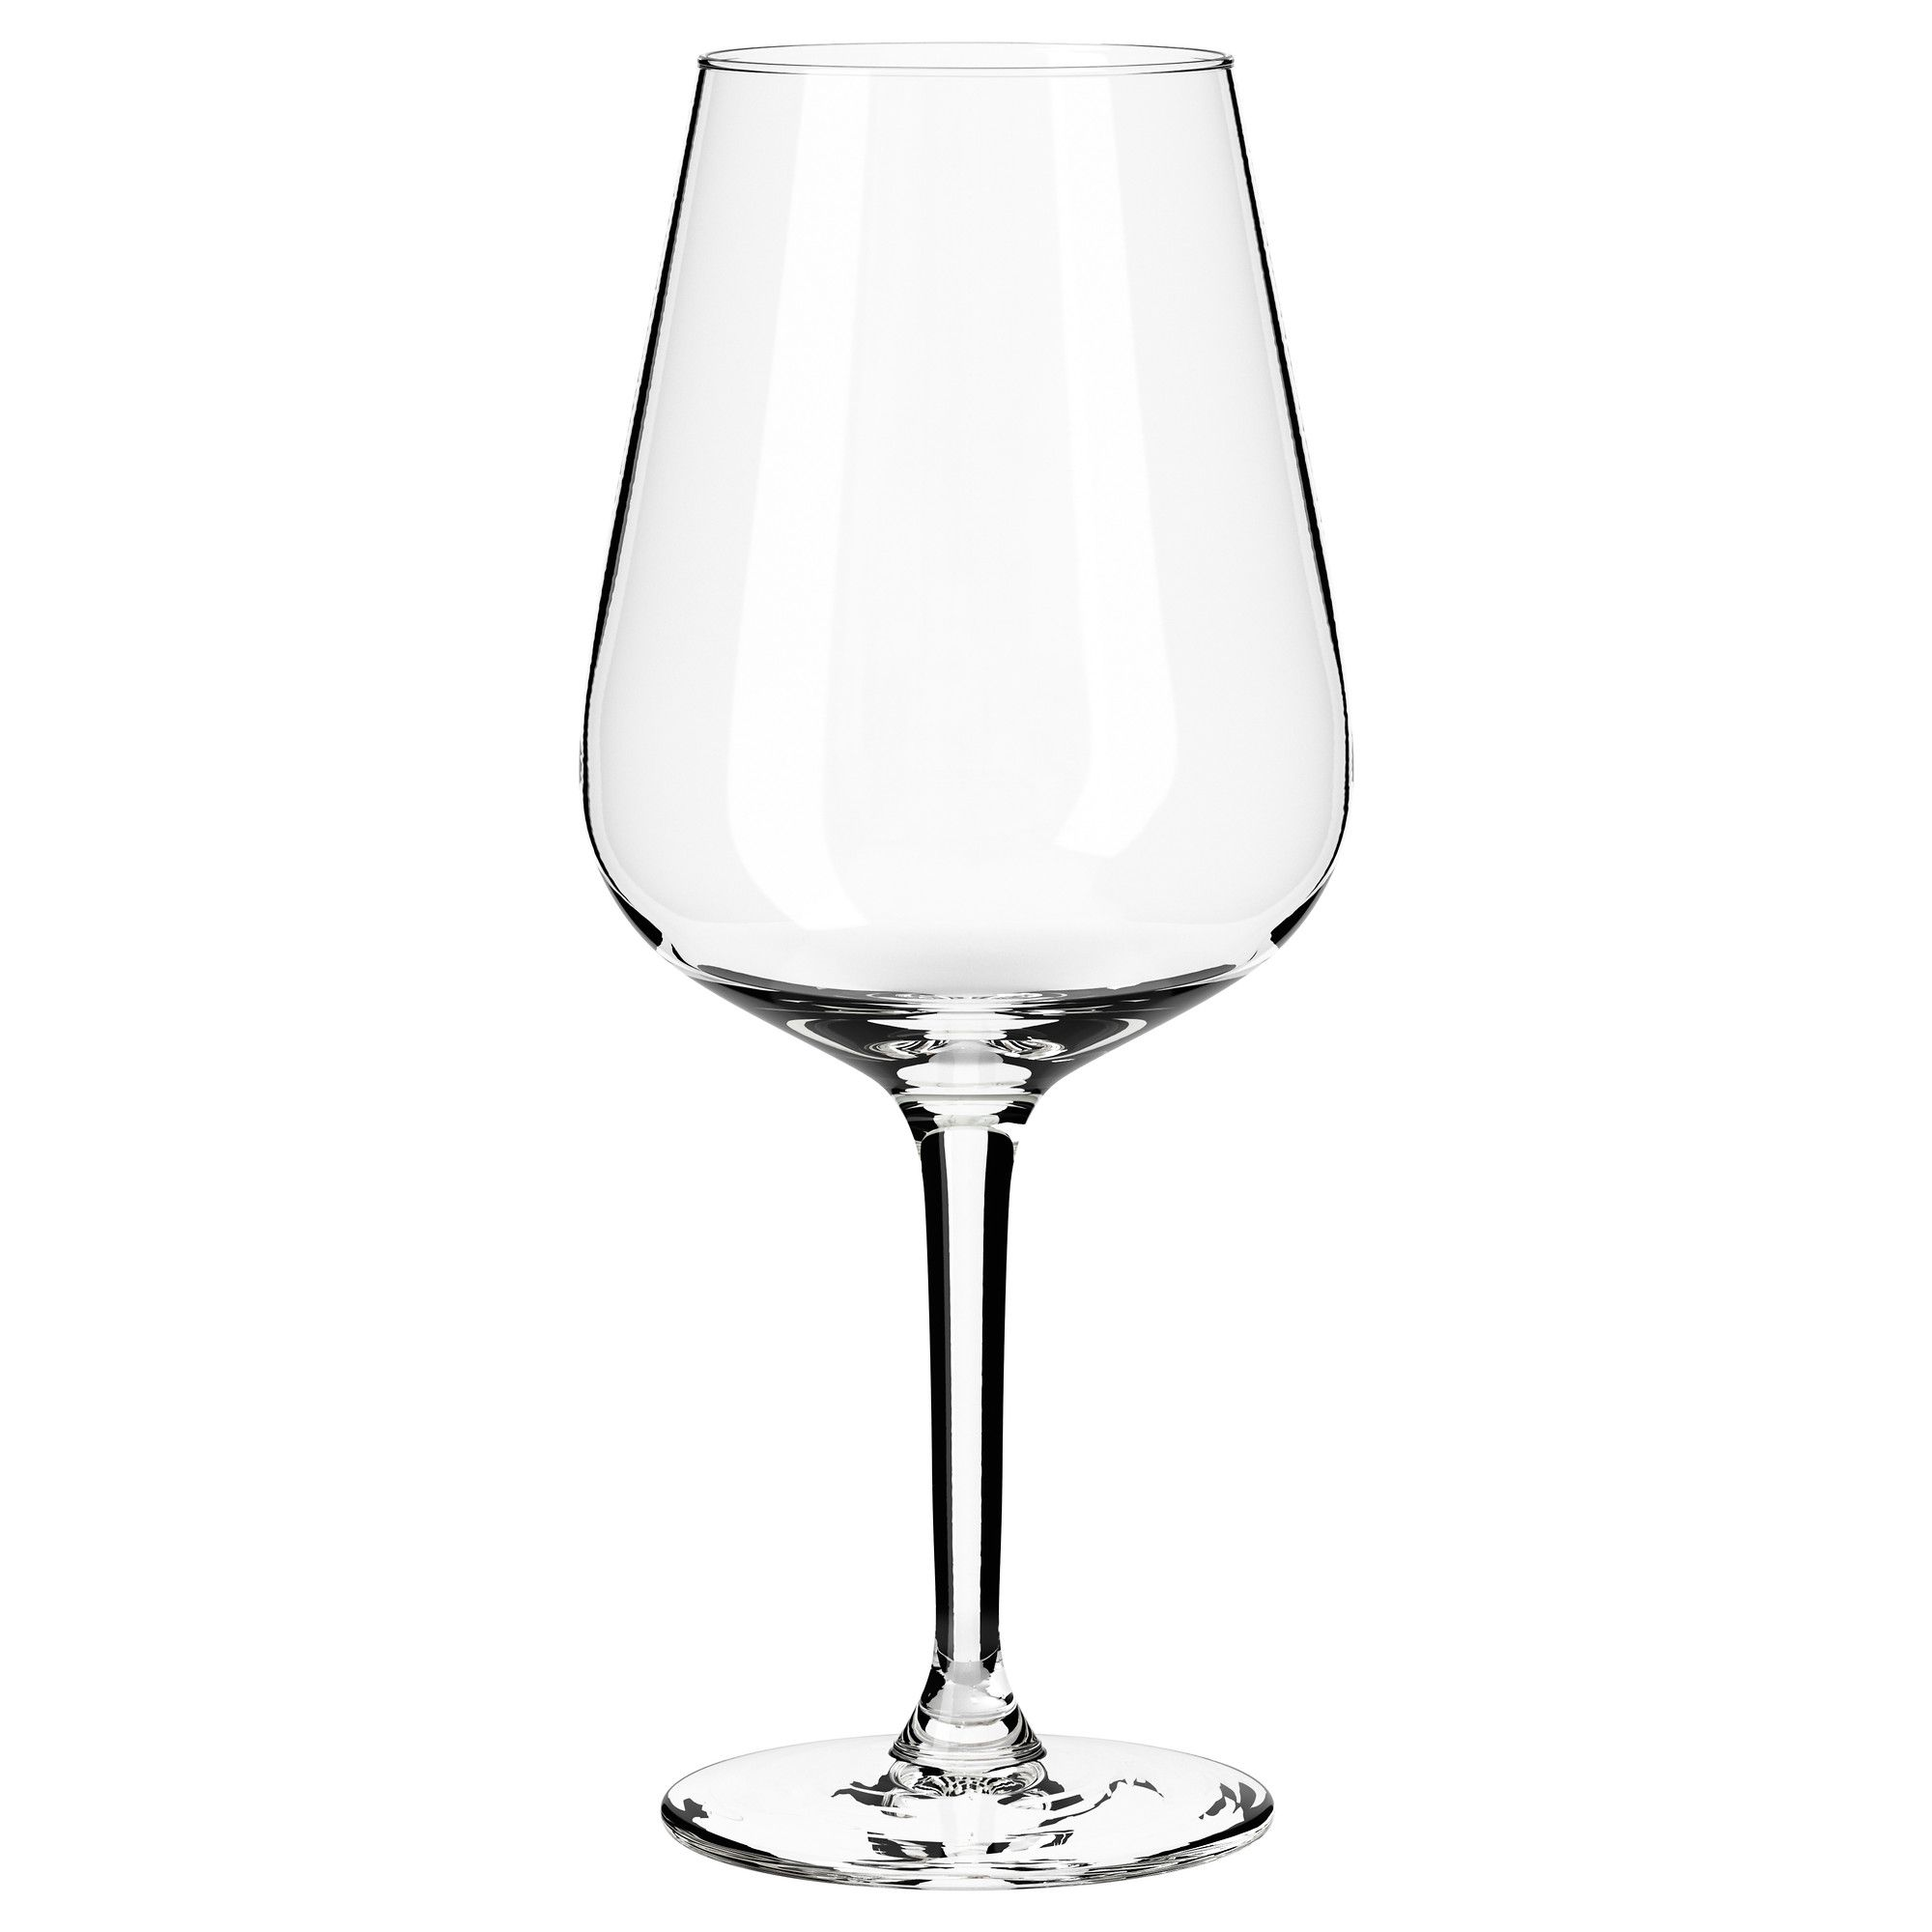 ikea hederlig red wine glass the glass has a large round bowl which helps the wine s aromas. Black Bedroom Furniture Sets. Home Design Ideas